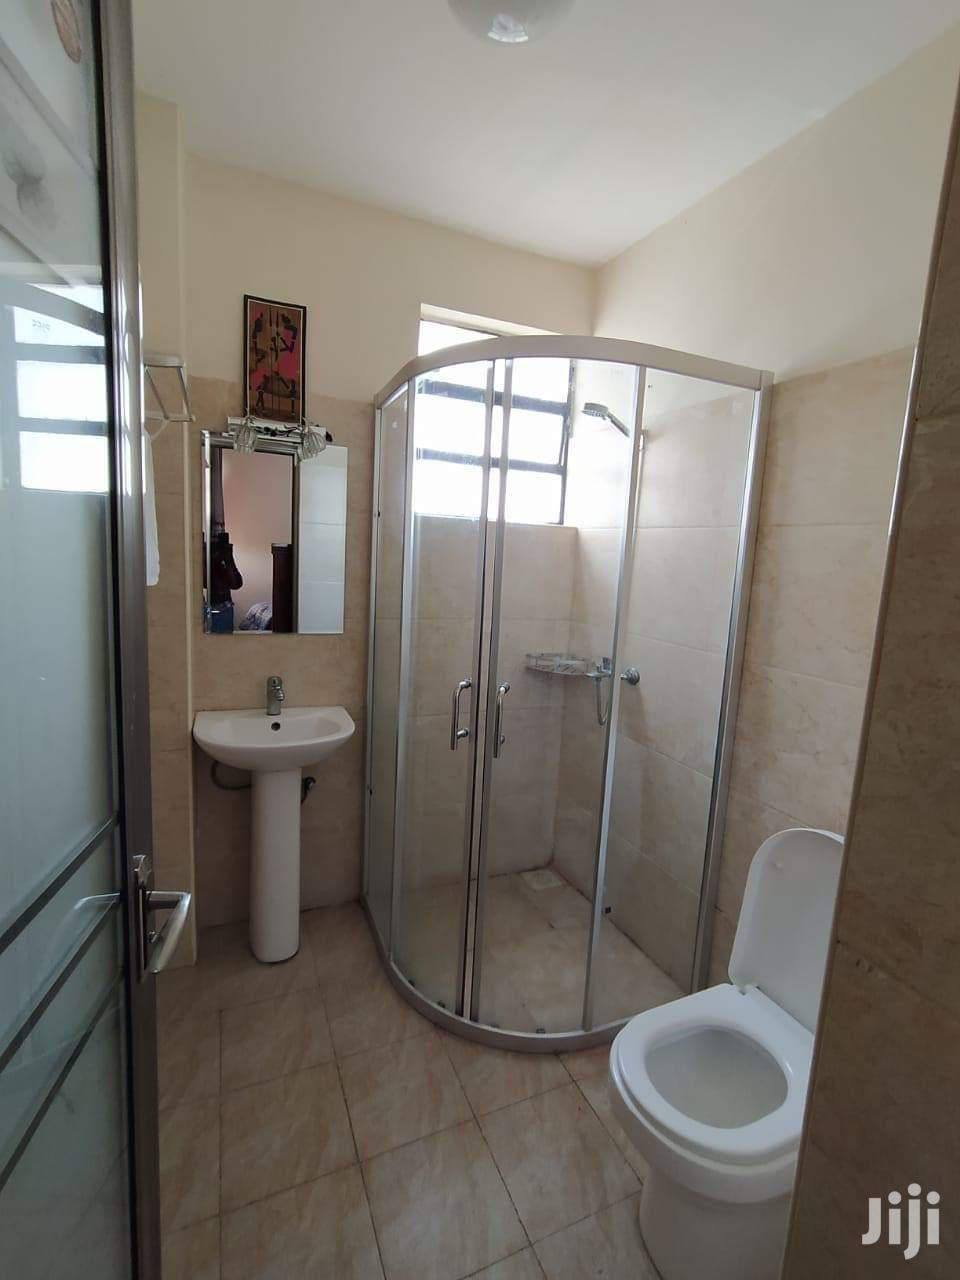 Furnished Two Bedroom Apartment In Naguru For Rent   Houses & Apartments For Rent for sale in Kampala, Central Region, Uganda